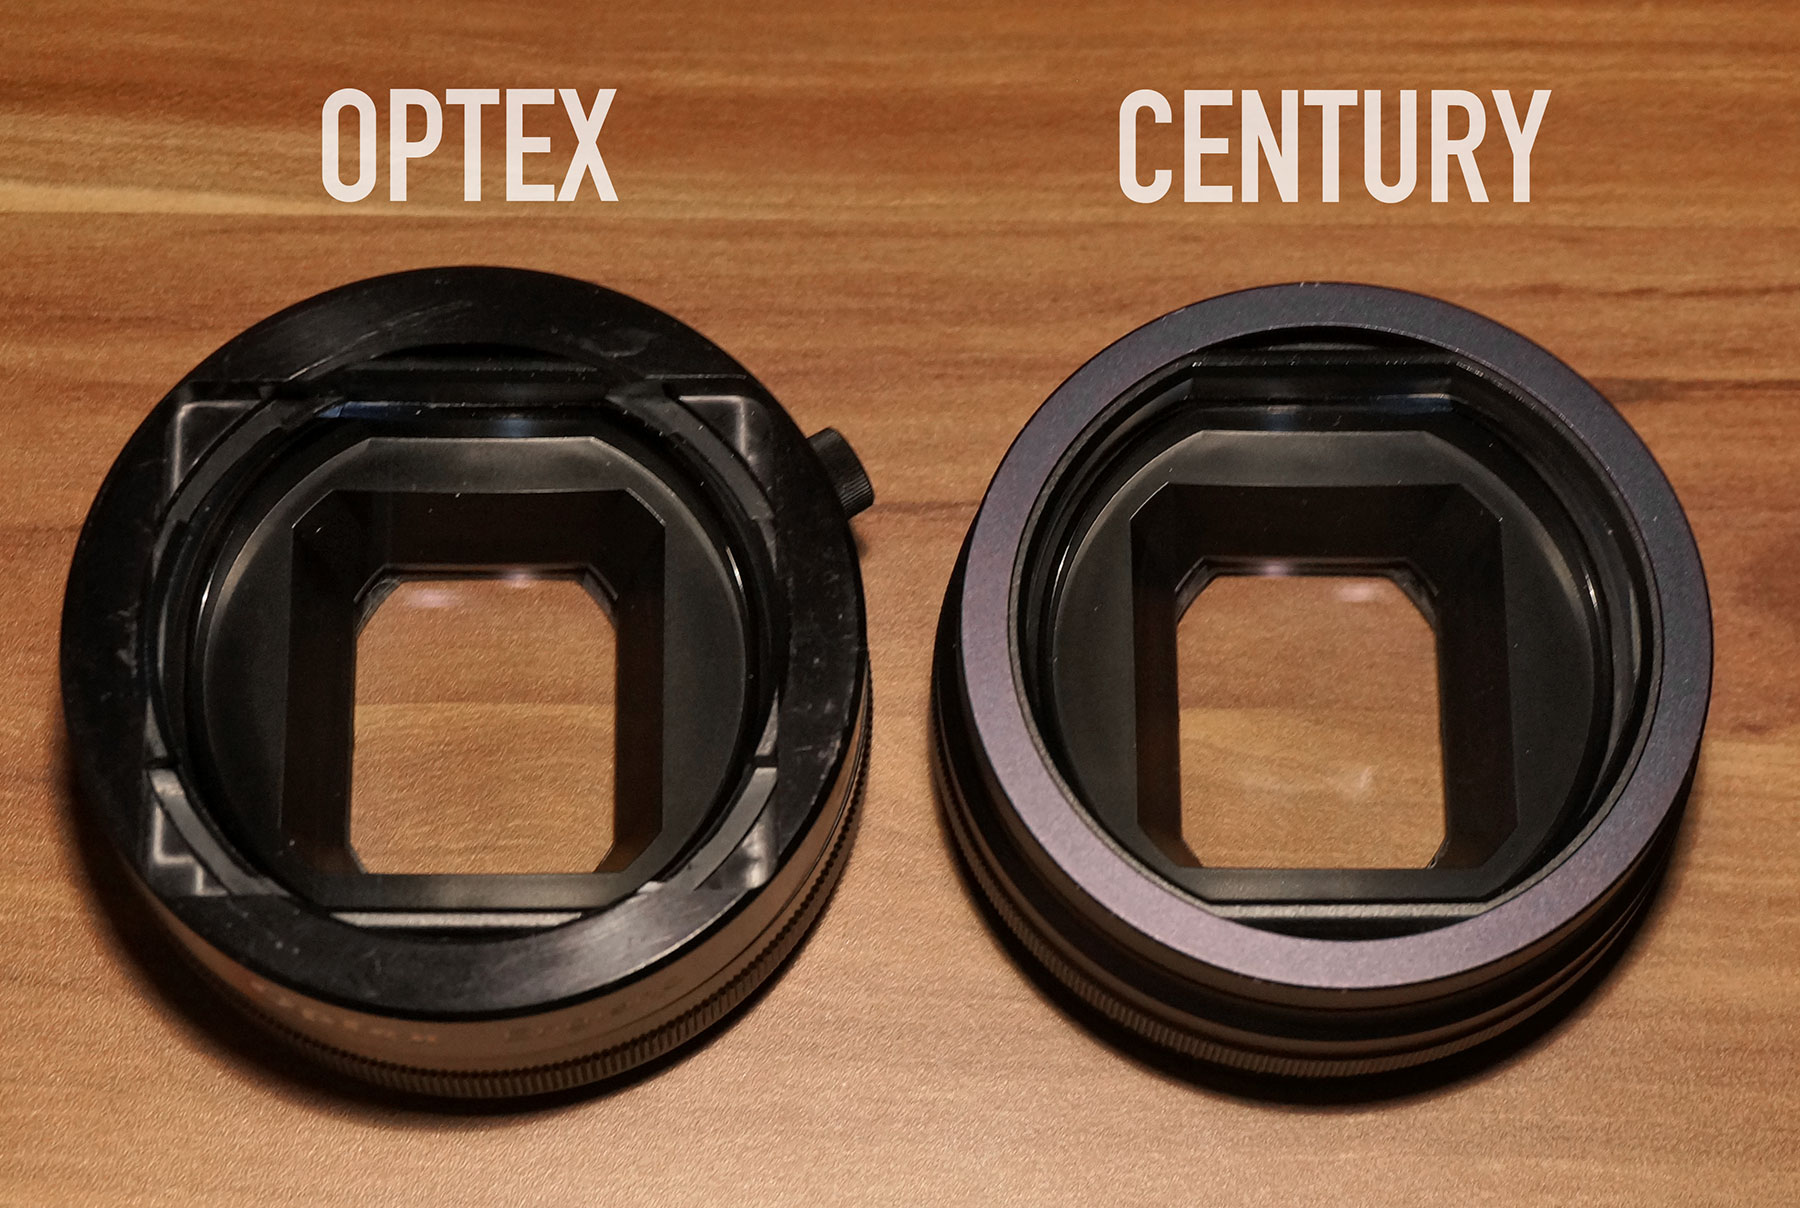 OPTEX / CENTURY 16:9 1 33x Anamorphic Lens Review | Vintage Lenses